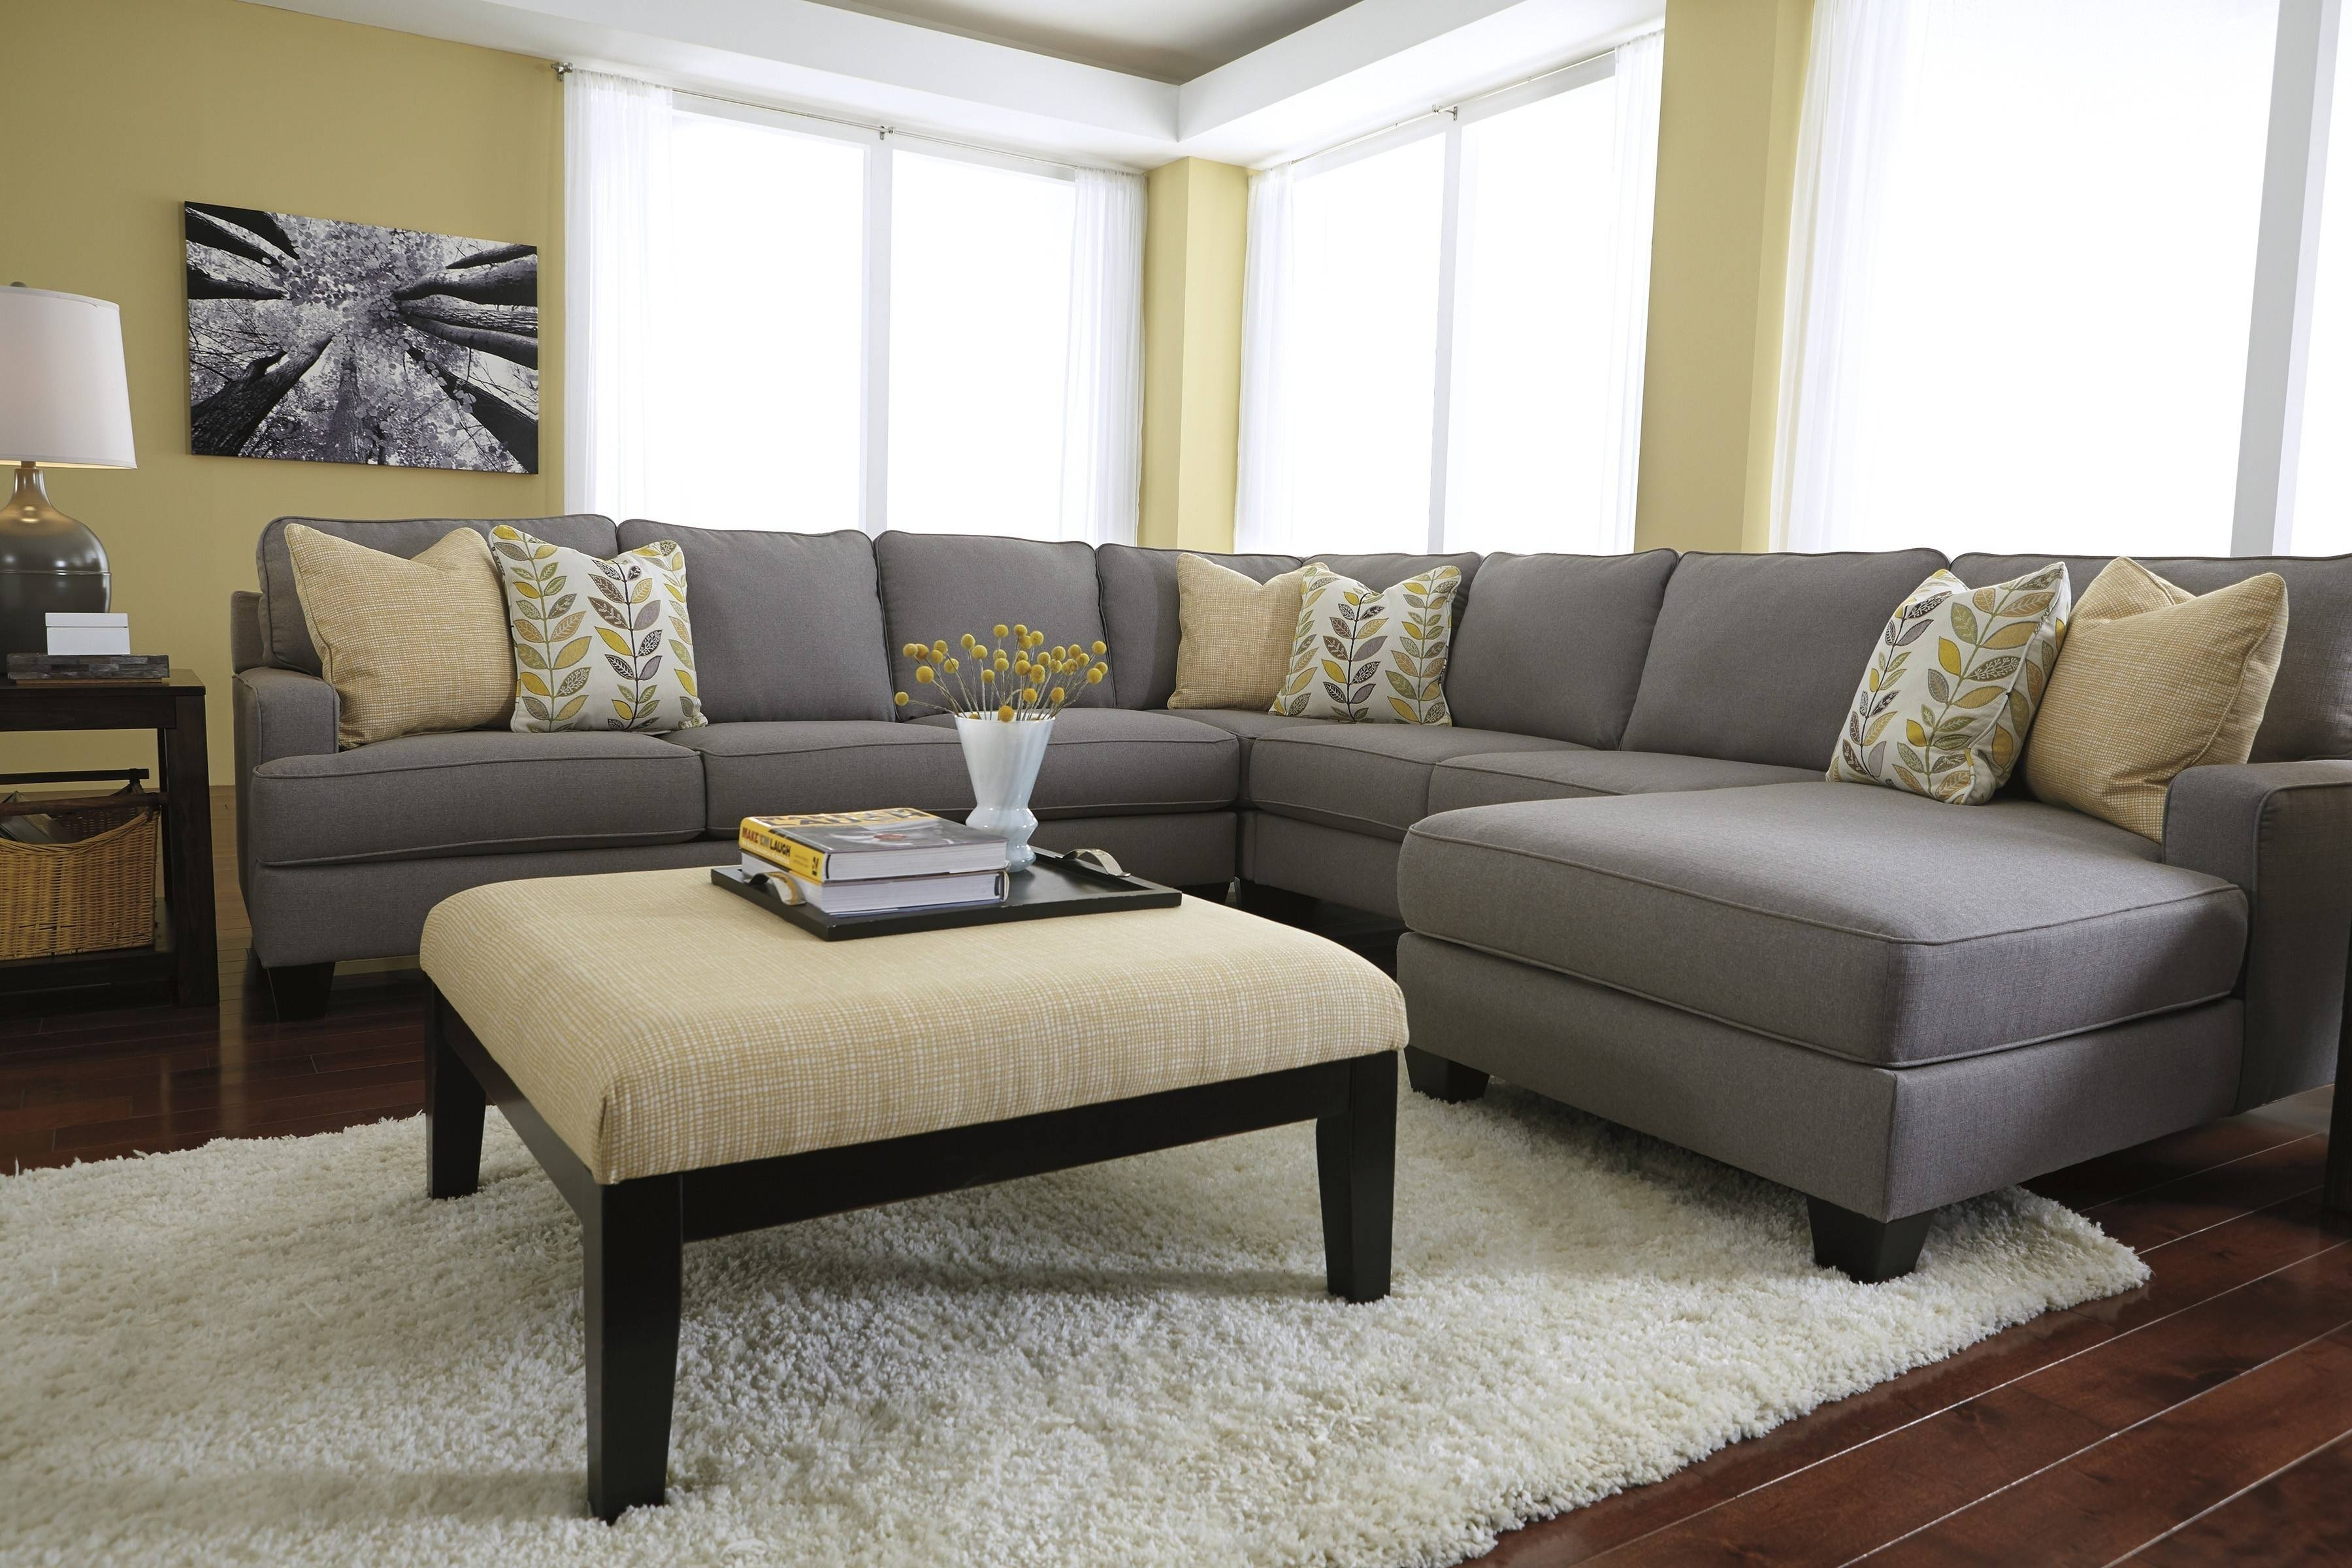 Furniture: Classic And Traditional Style Velvet Sectional Sofa For in Tufted Sectional Sofa With Chaise (Image 5 of 30)